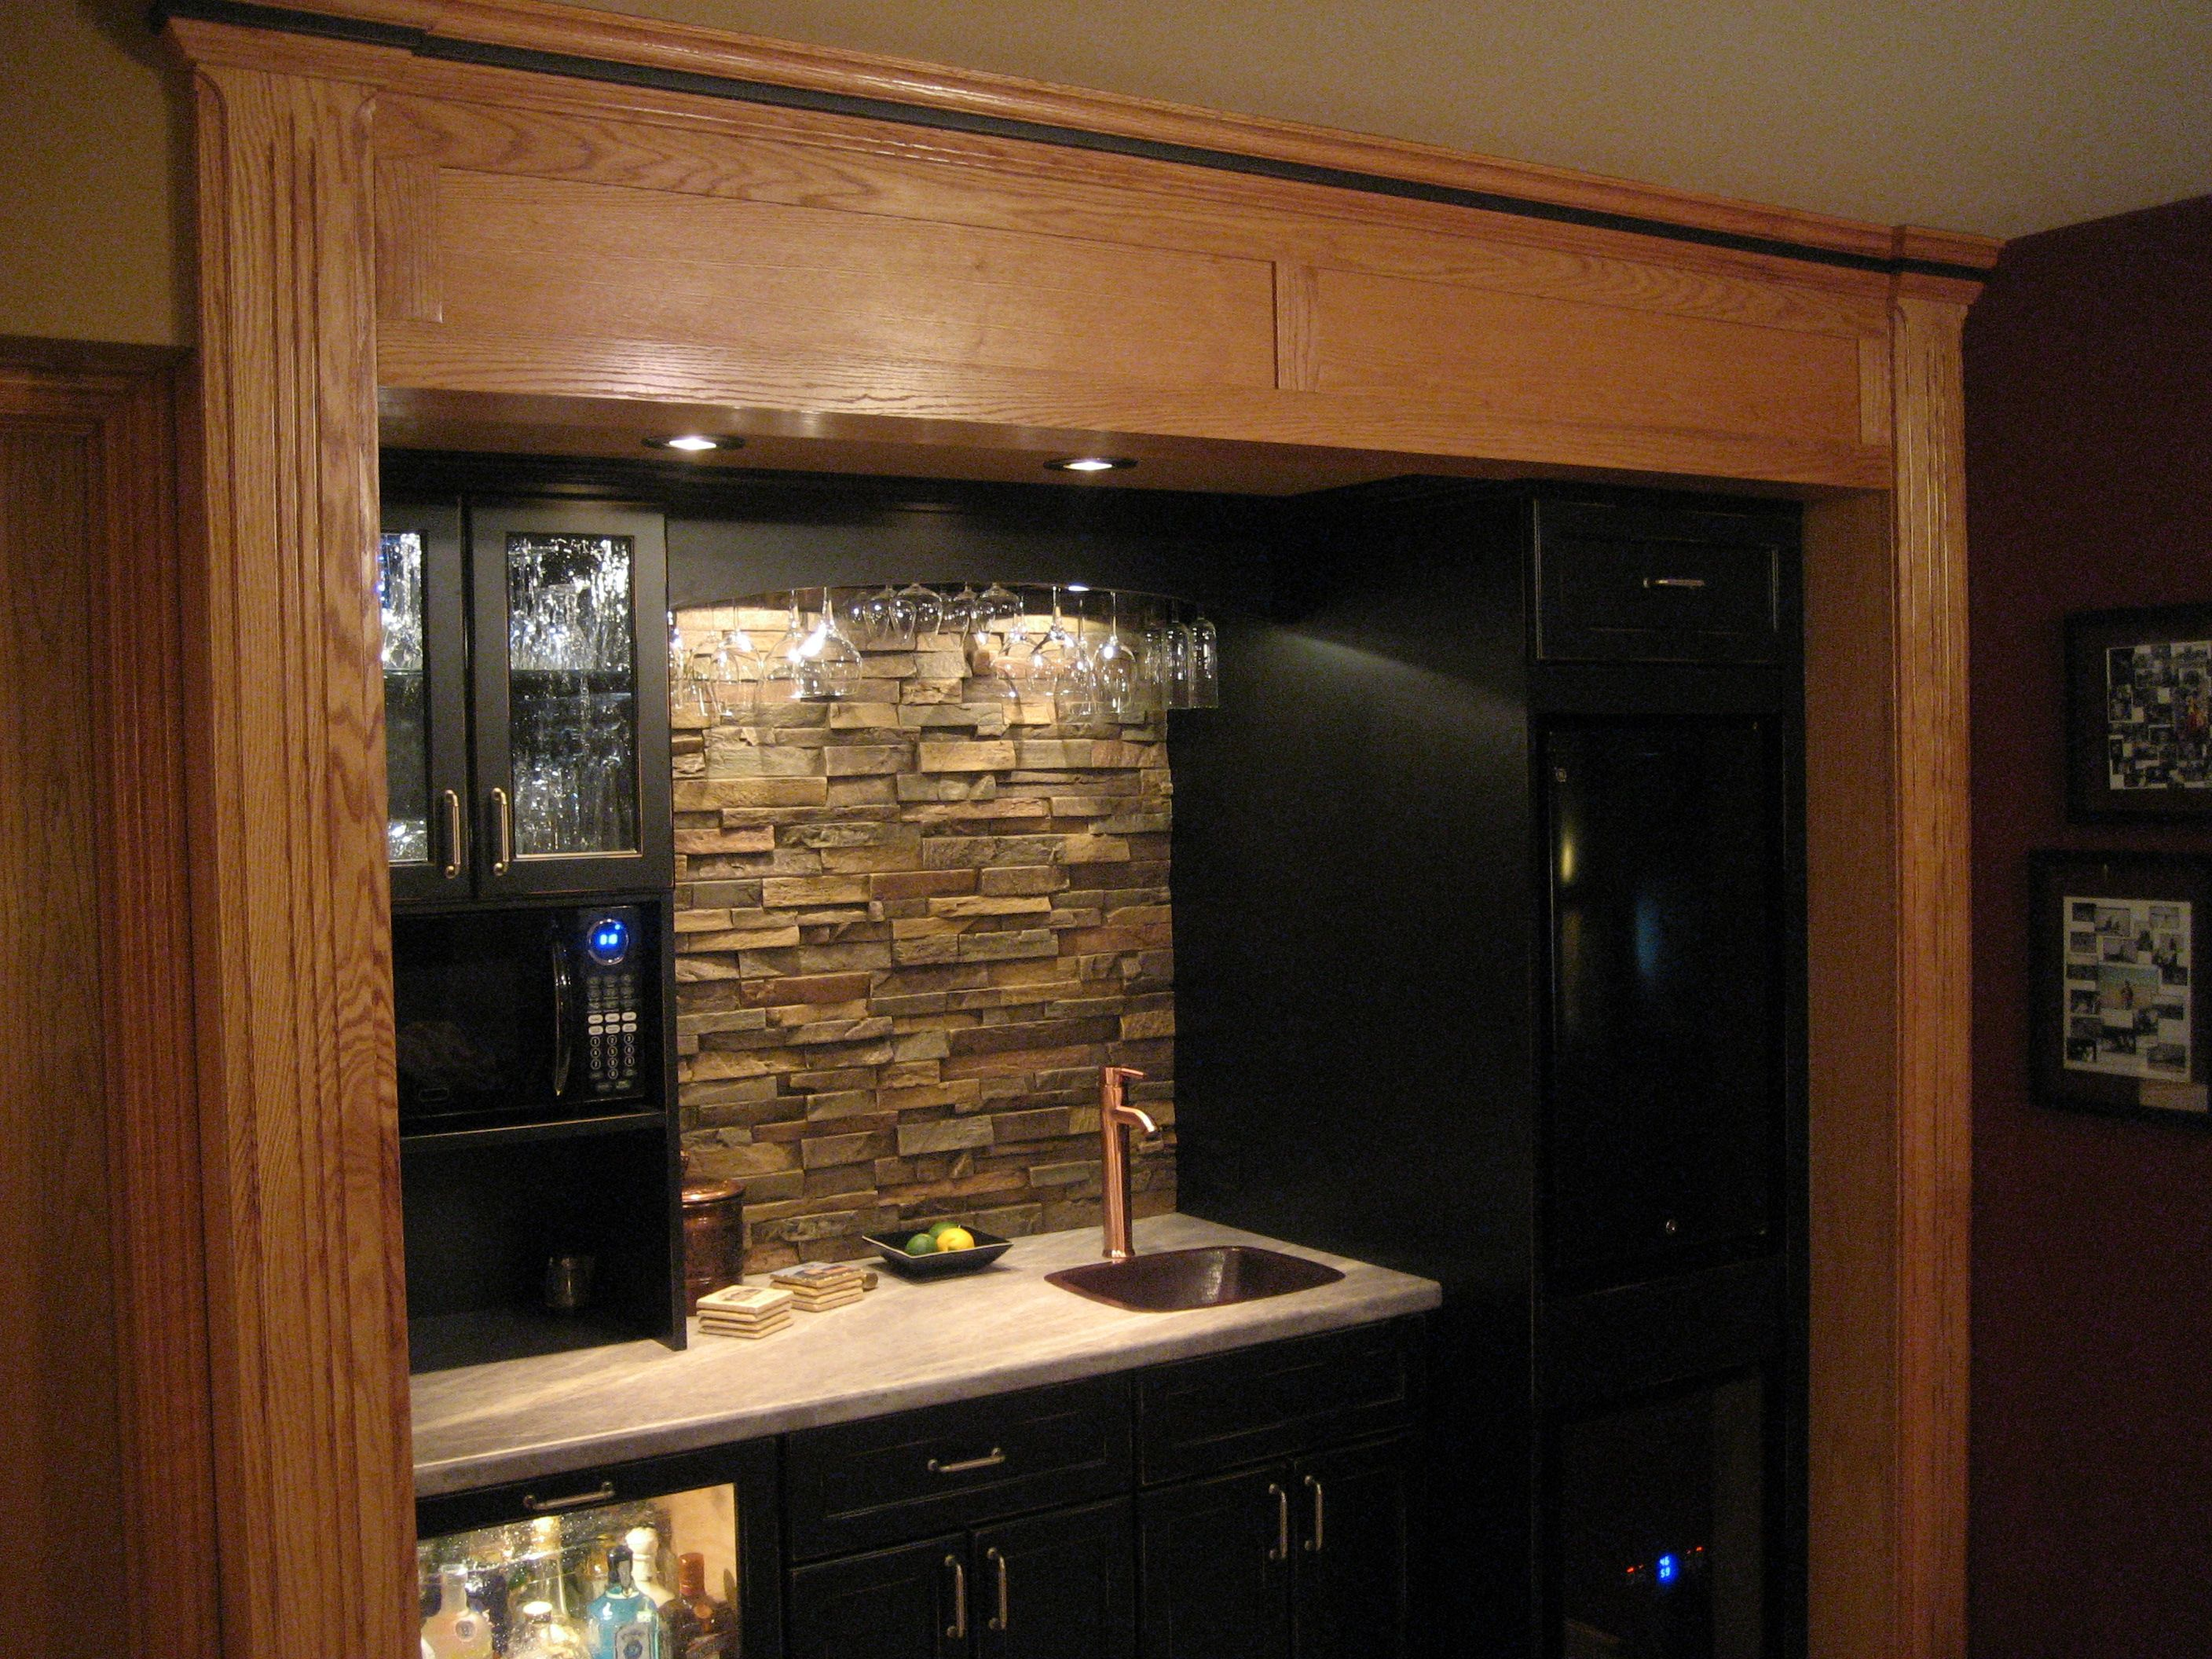 Stone Backsplash Ideas For Kitchen Adding Stone Veneer